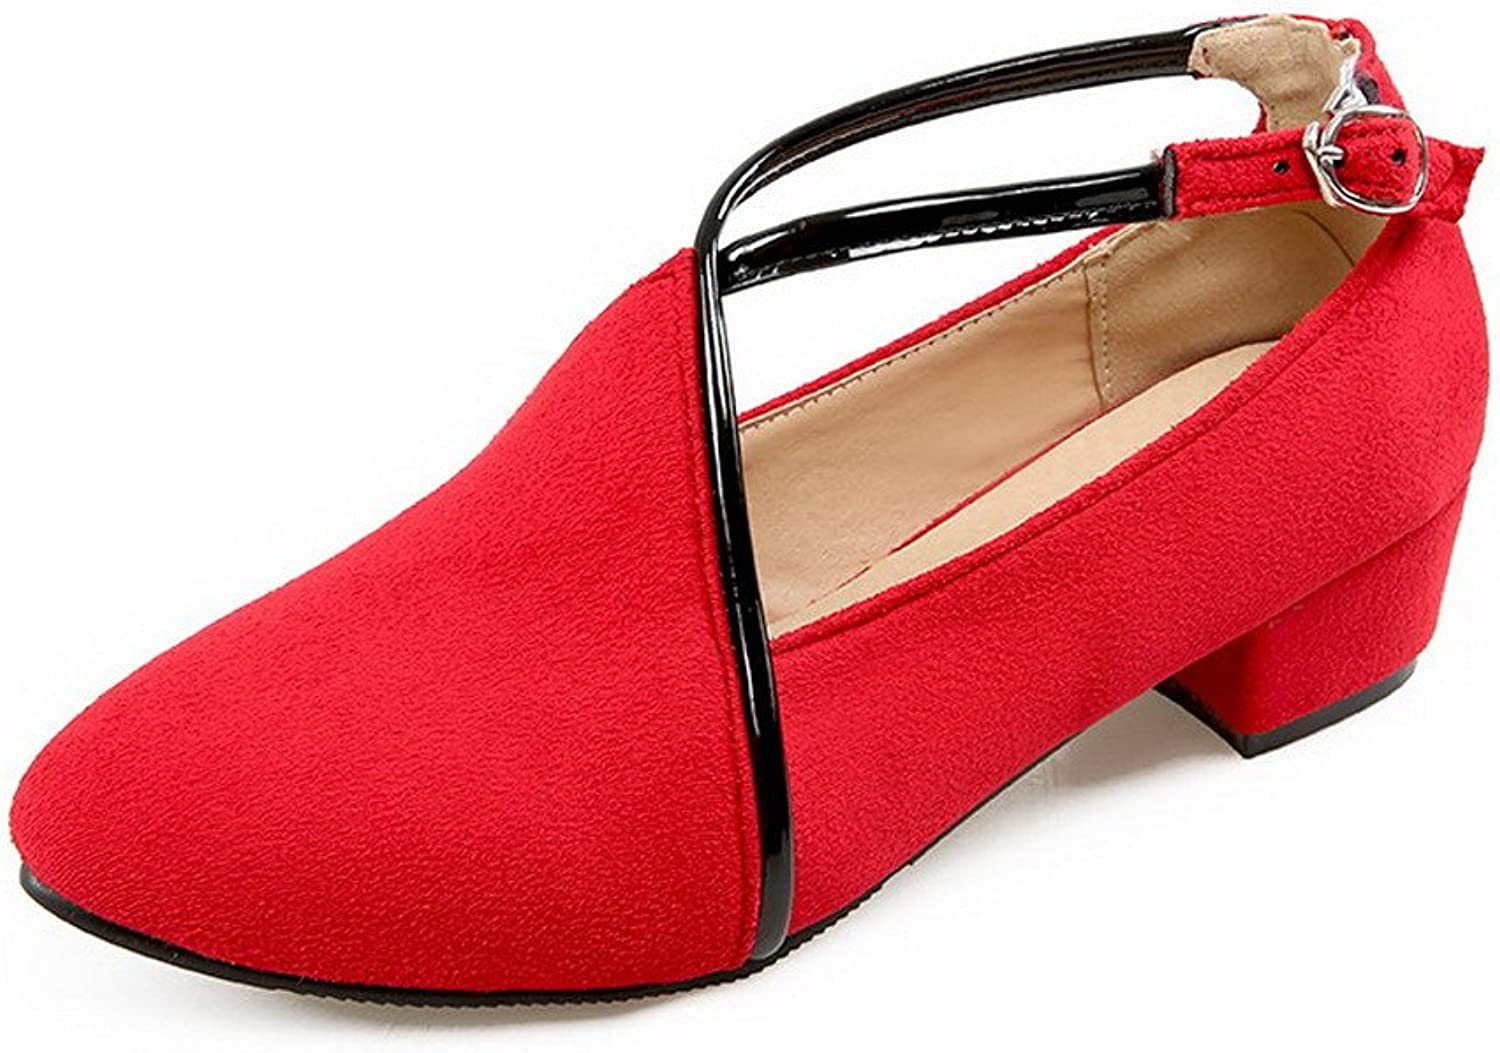 AllhqFashion Women's Frosted Buckle Pointed Closed Toe Low Heels Solid Pumps-shoes